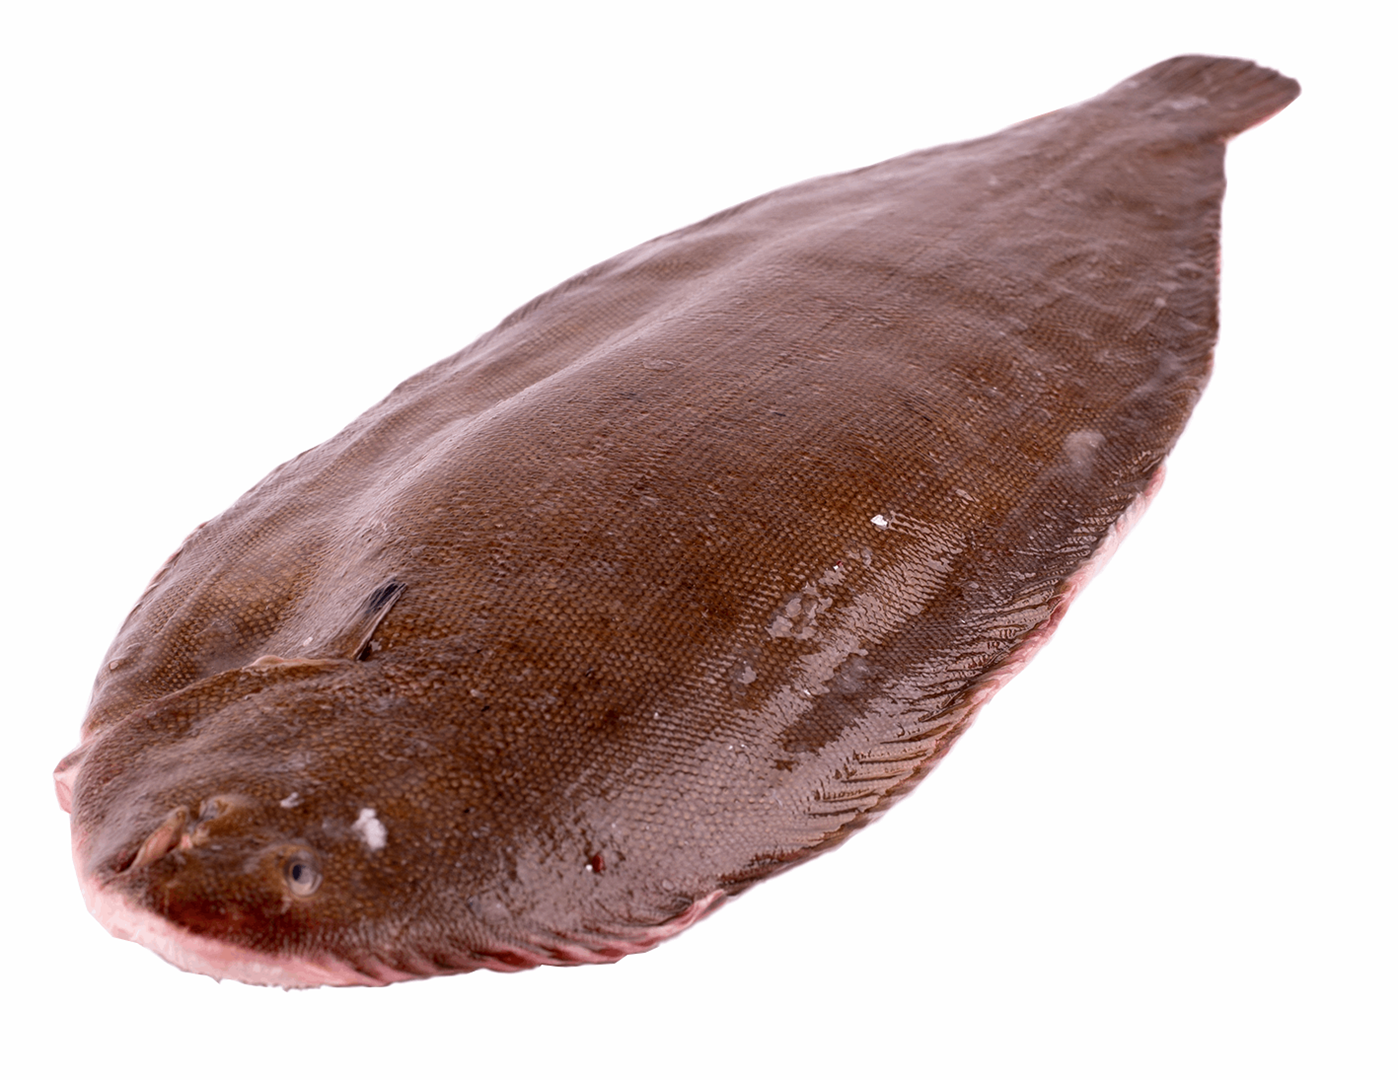 Productafbeelding DOVER SOLE WITH SKIN FRESH 700-800GR